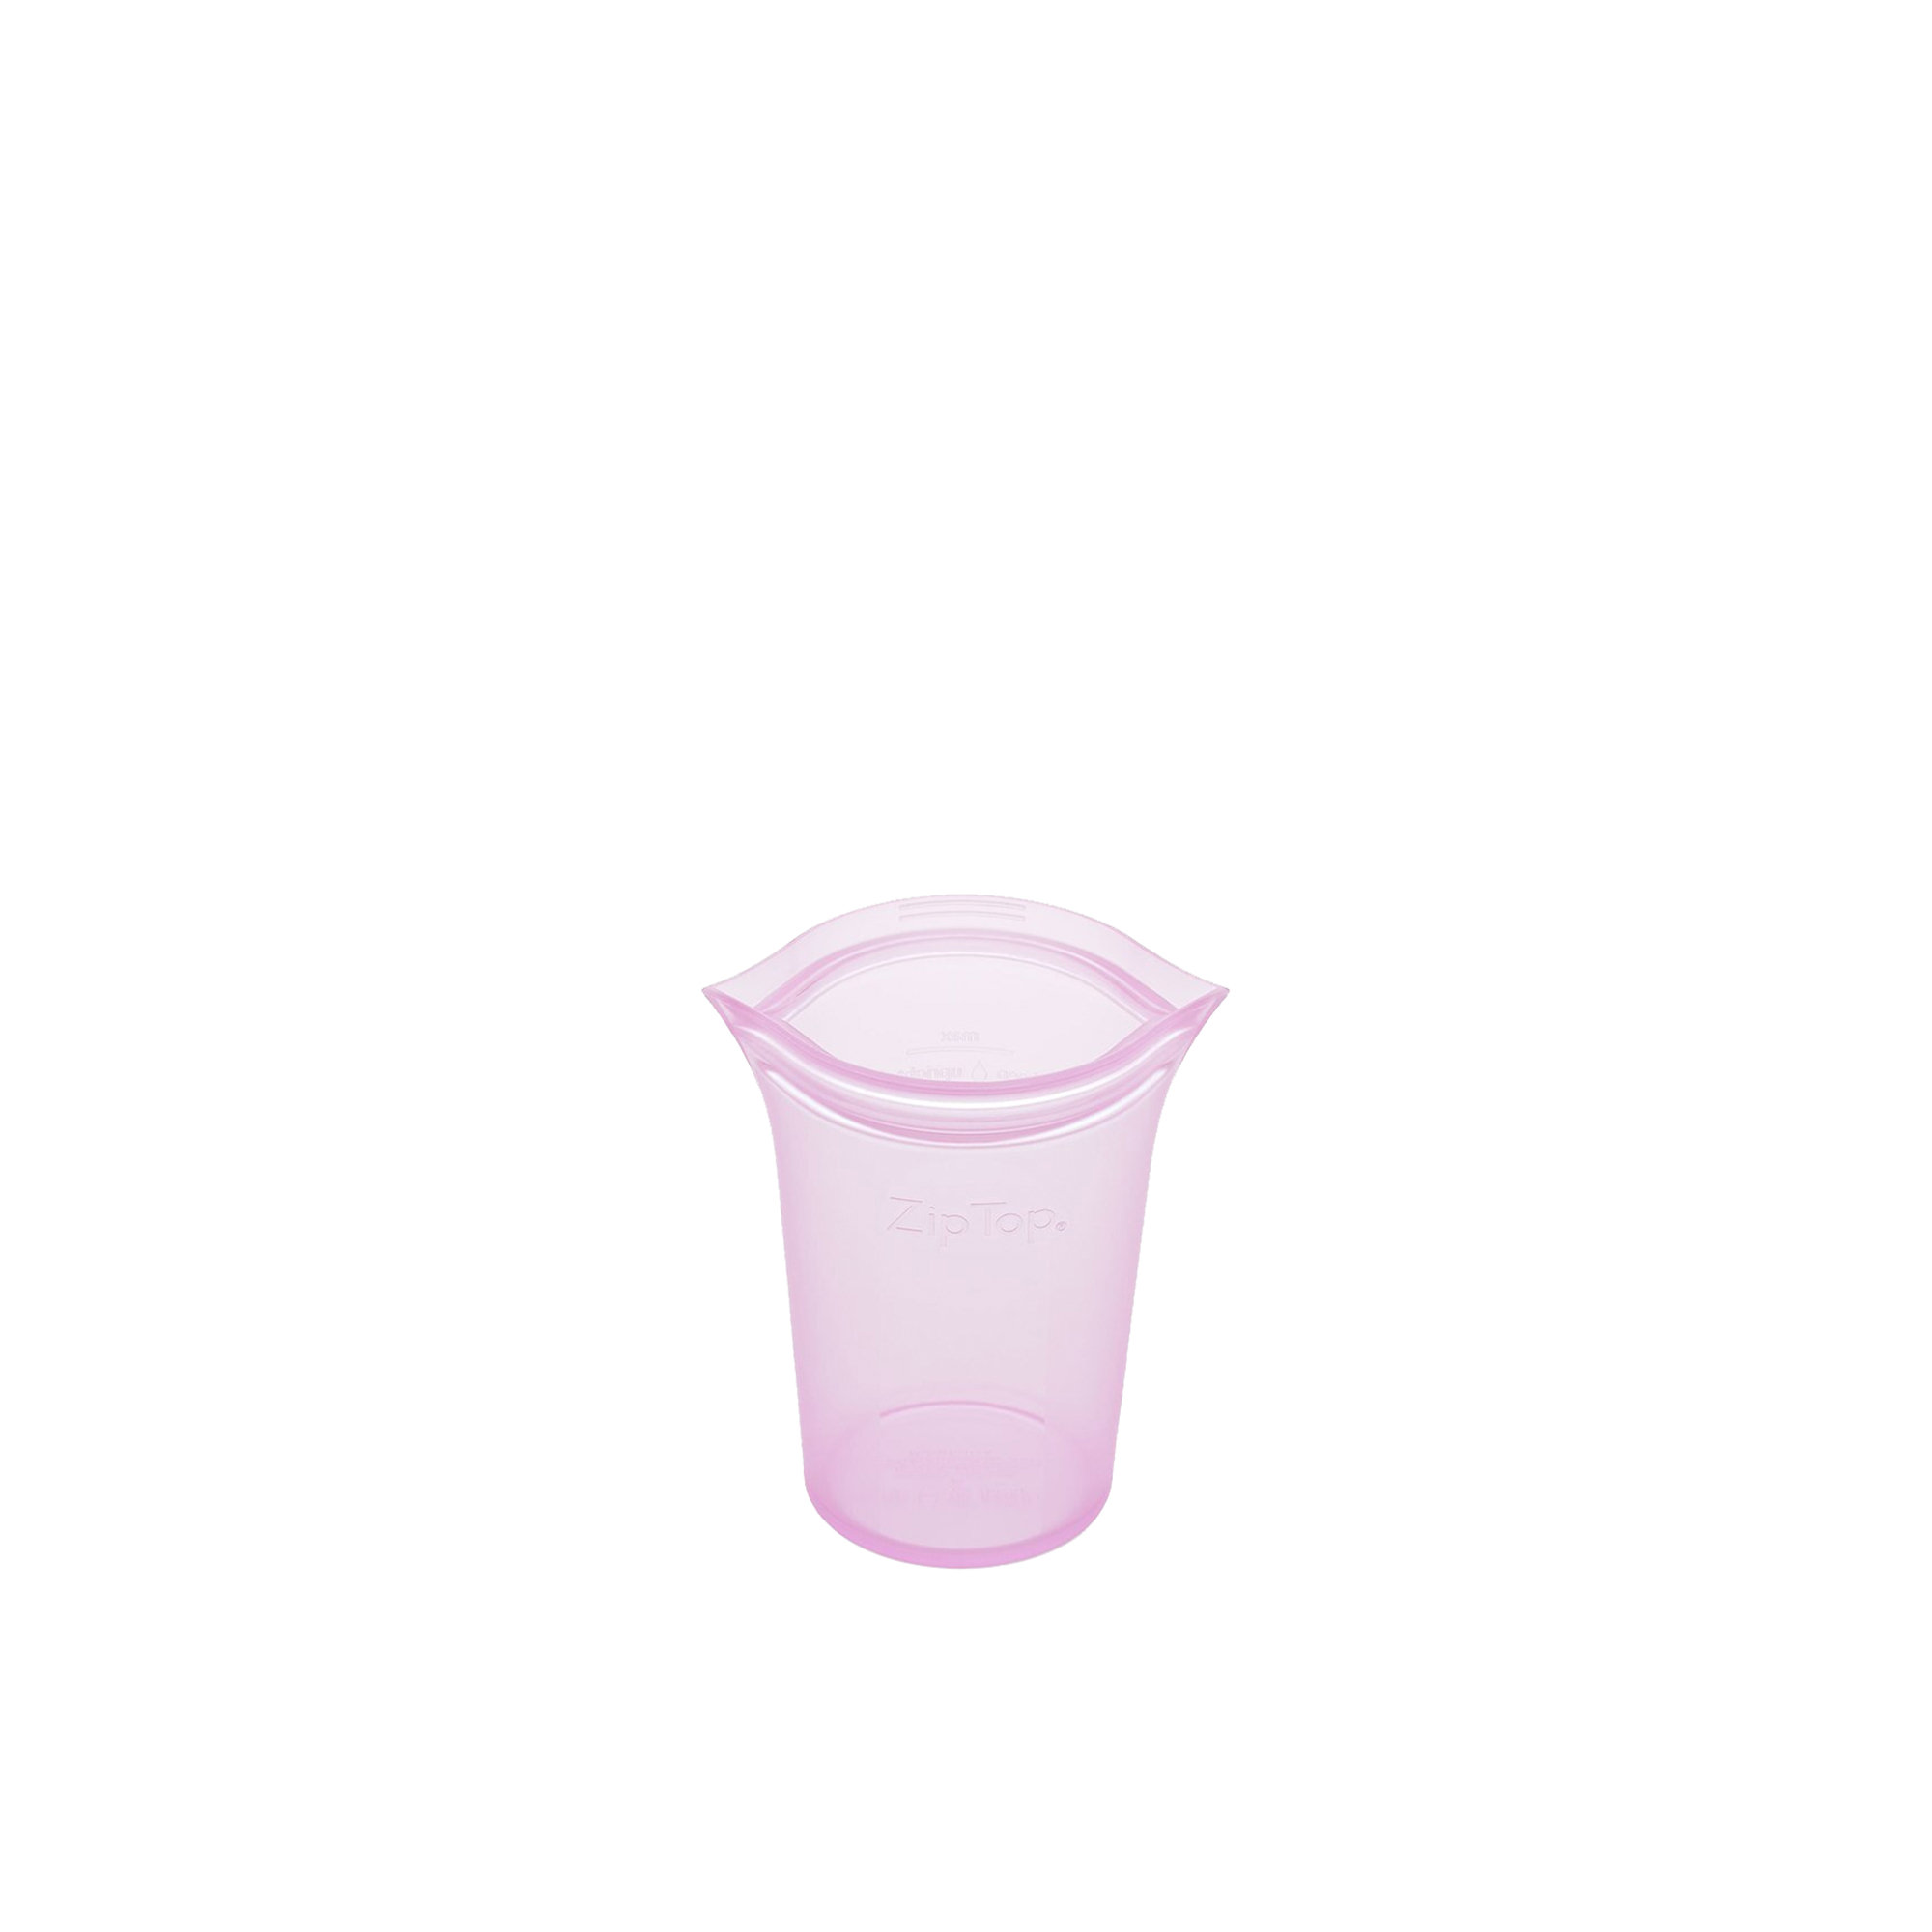 Zip Top Platinum Silicone Small Cup Container 237ml Lavender